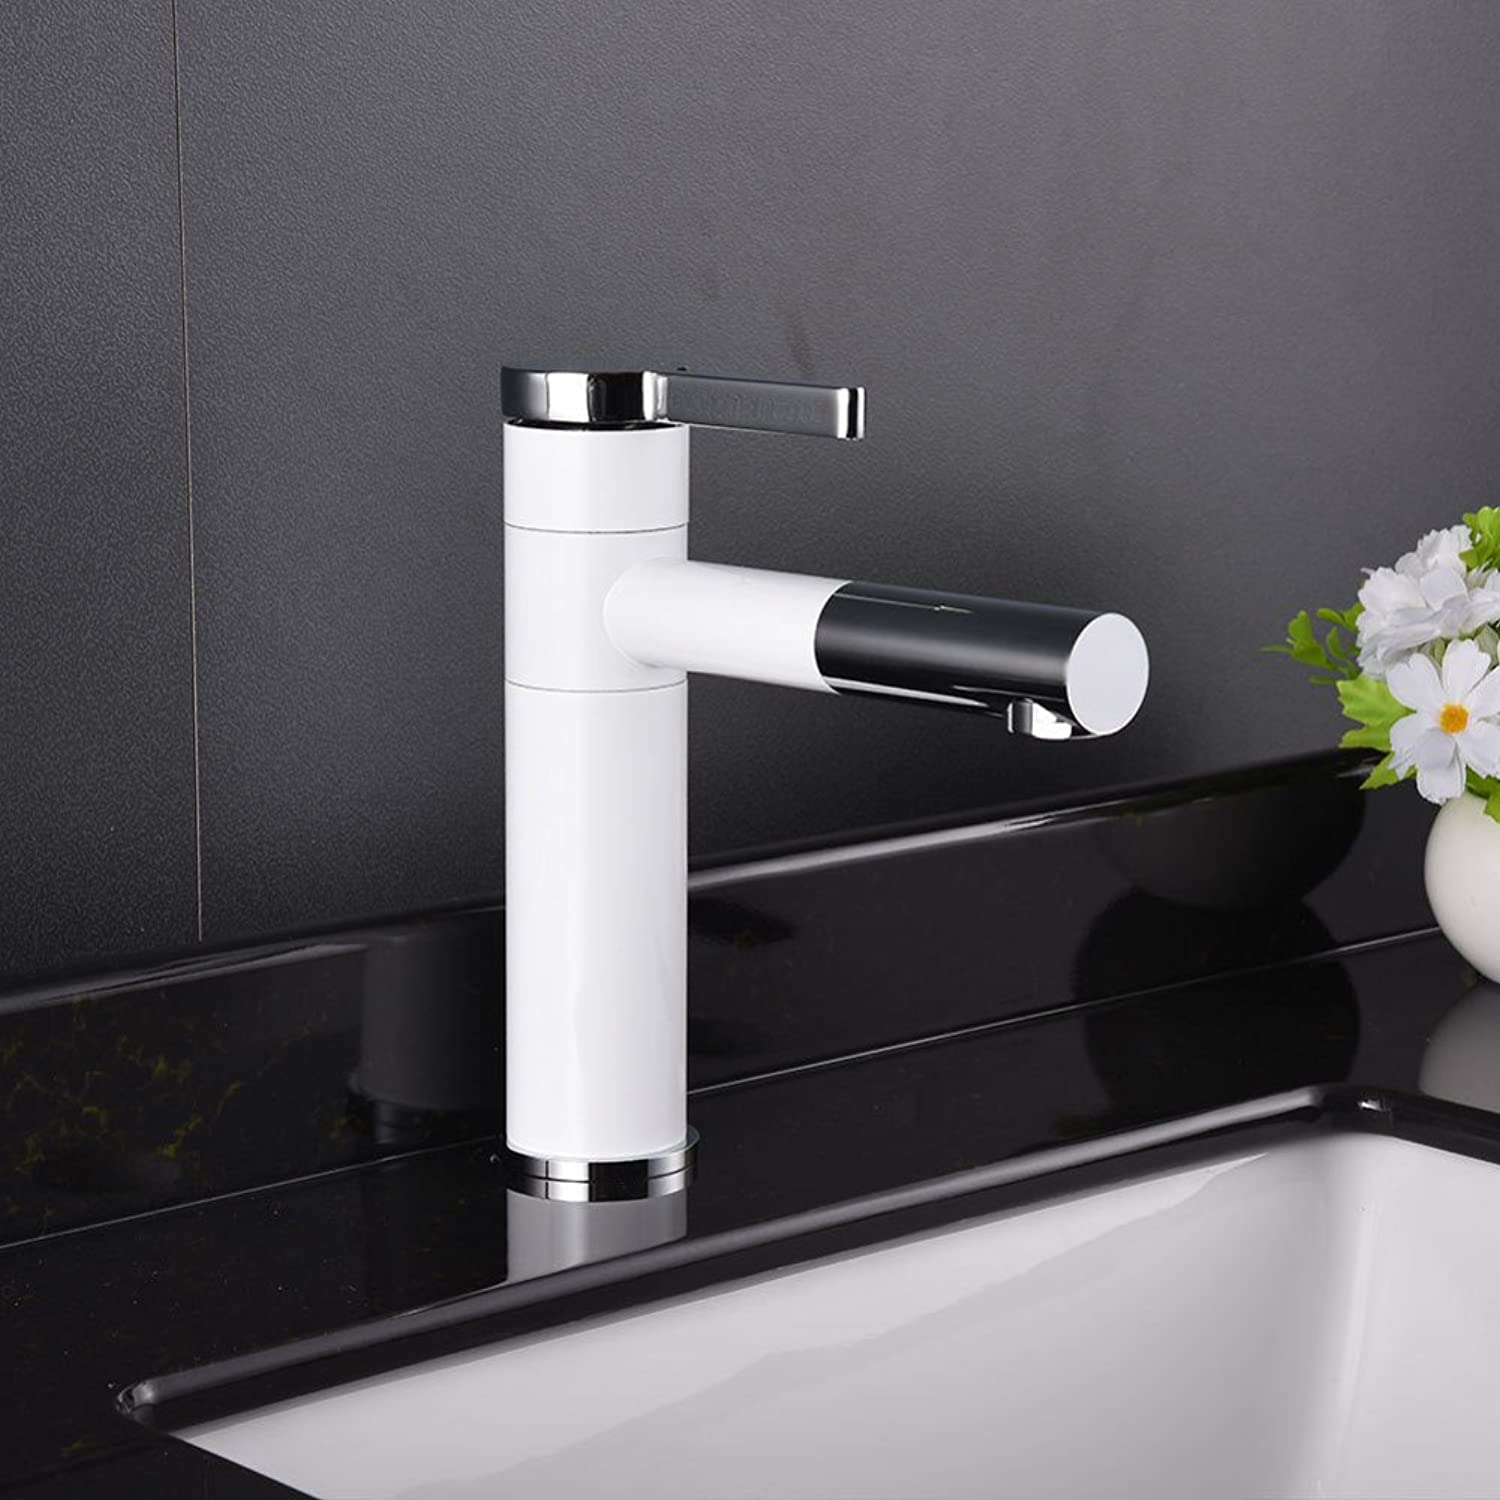 GZF Faucet paint base faucet redating basin faucet bathroom wash basin hot and cold faucet single hole faucet